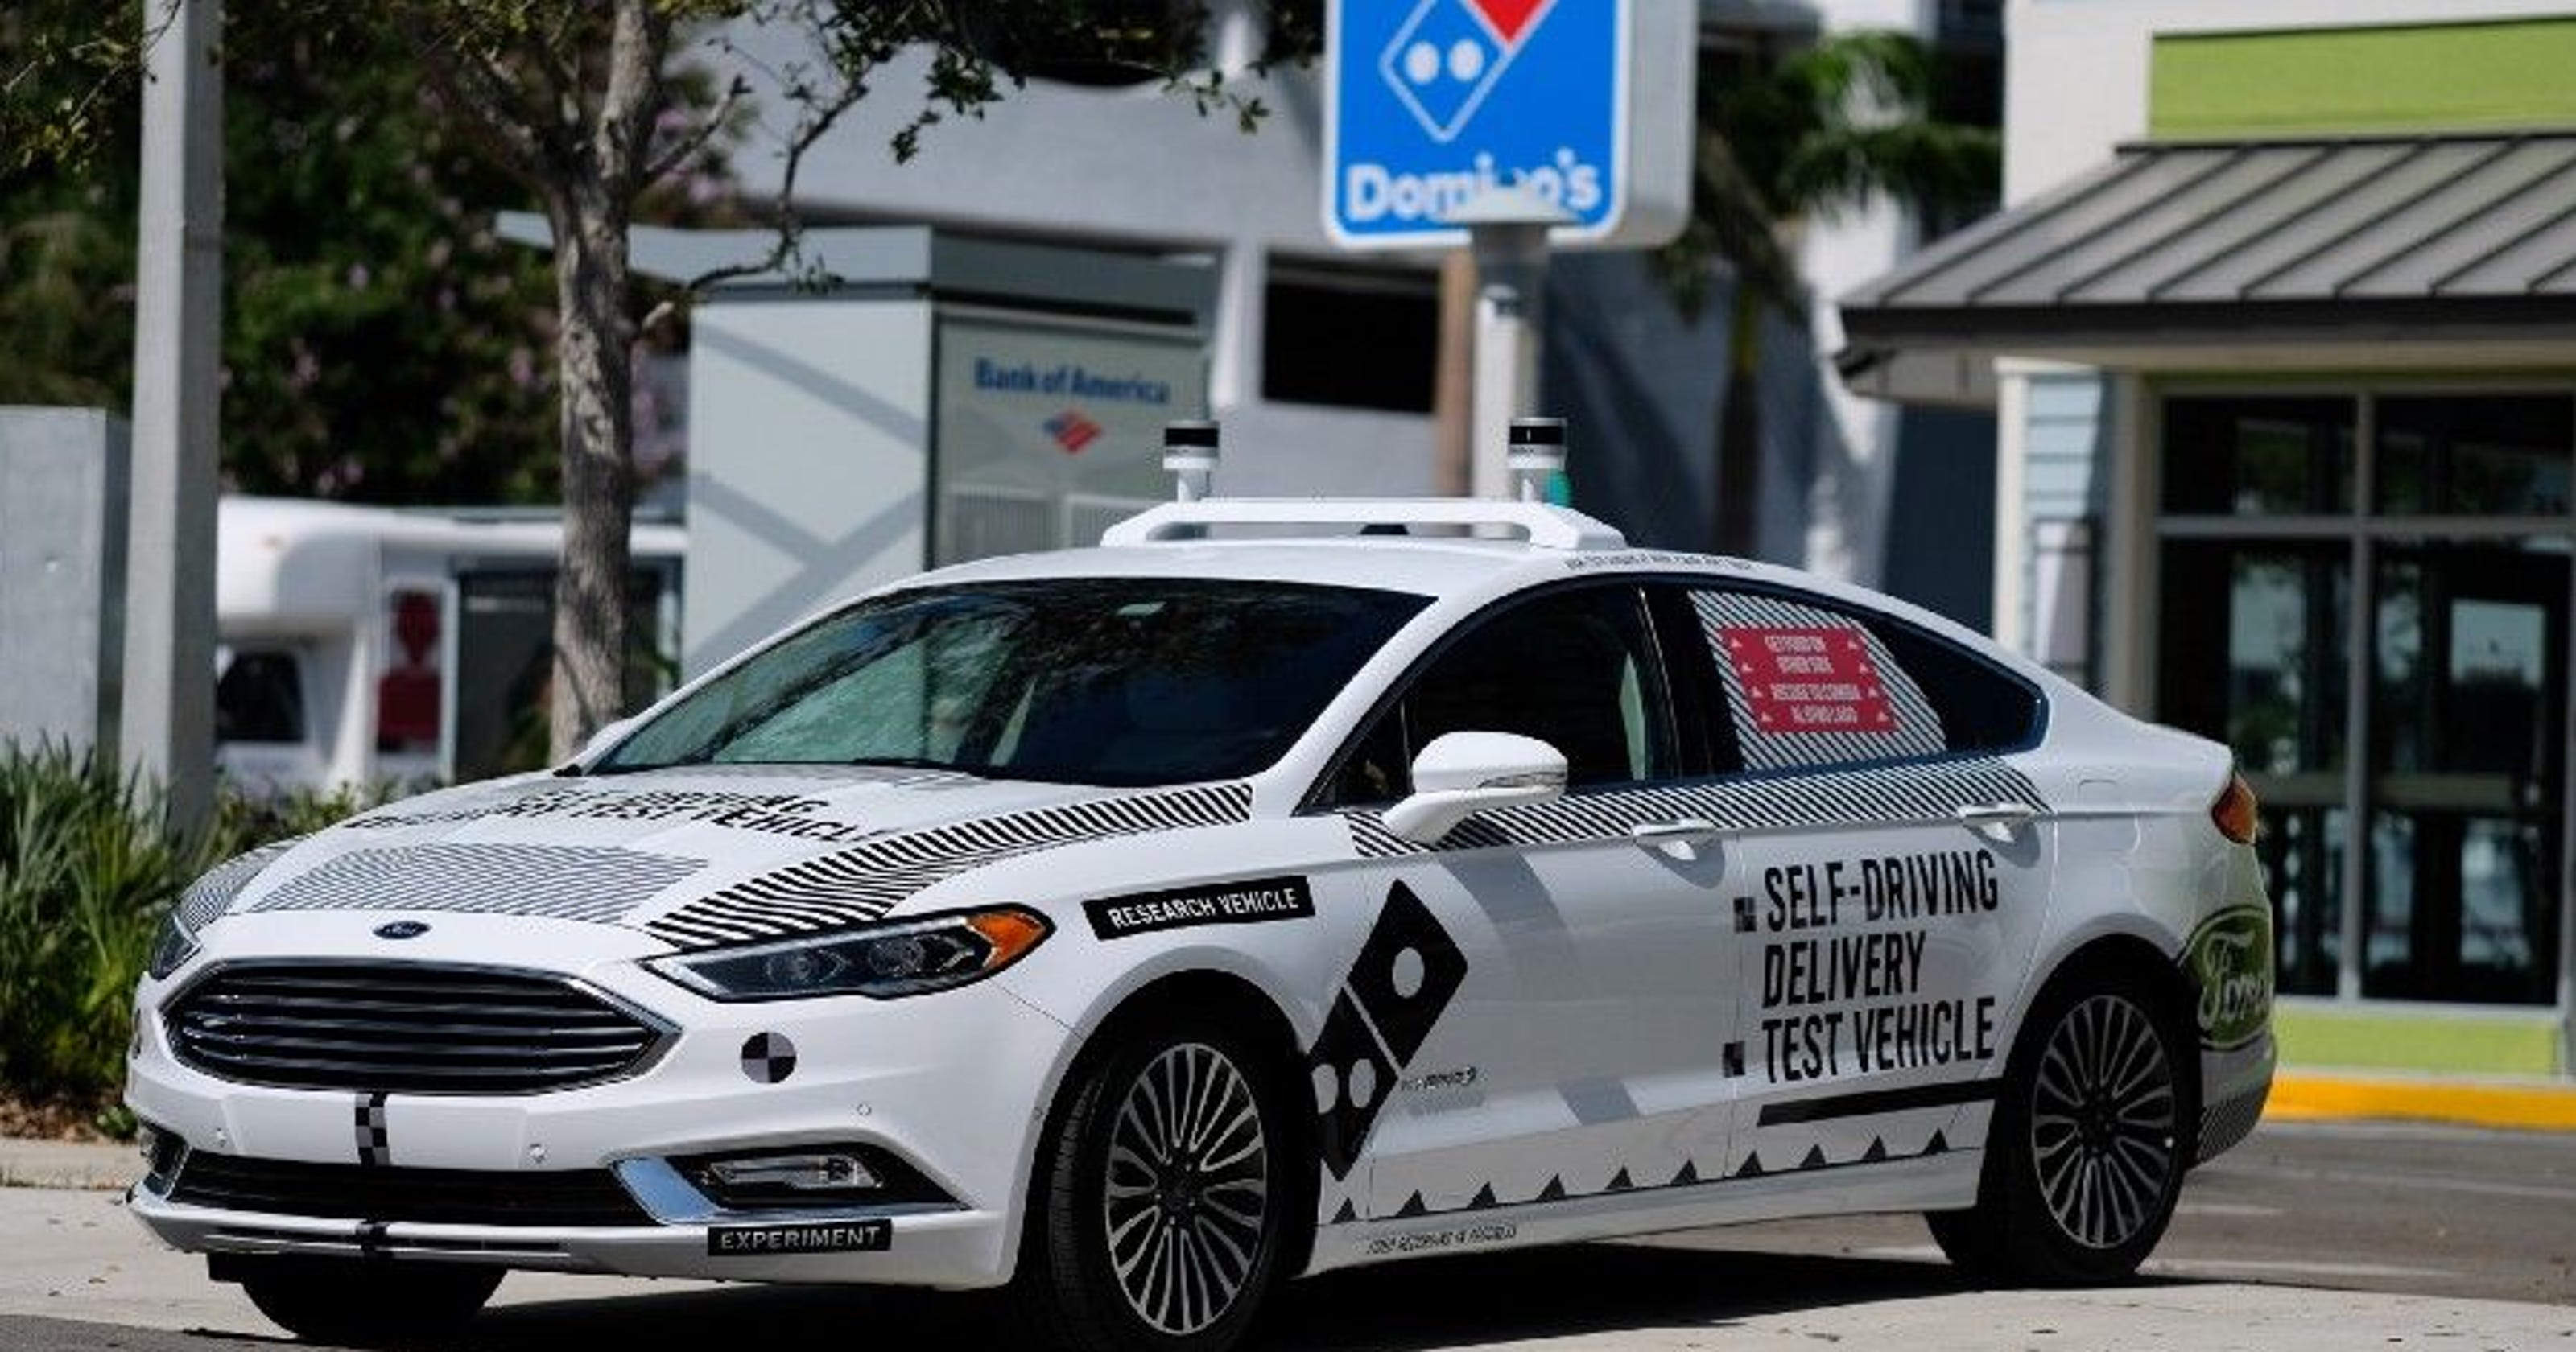 Ford picks Miami for self-driving vehicle test in Domino's